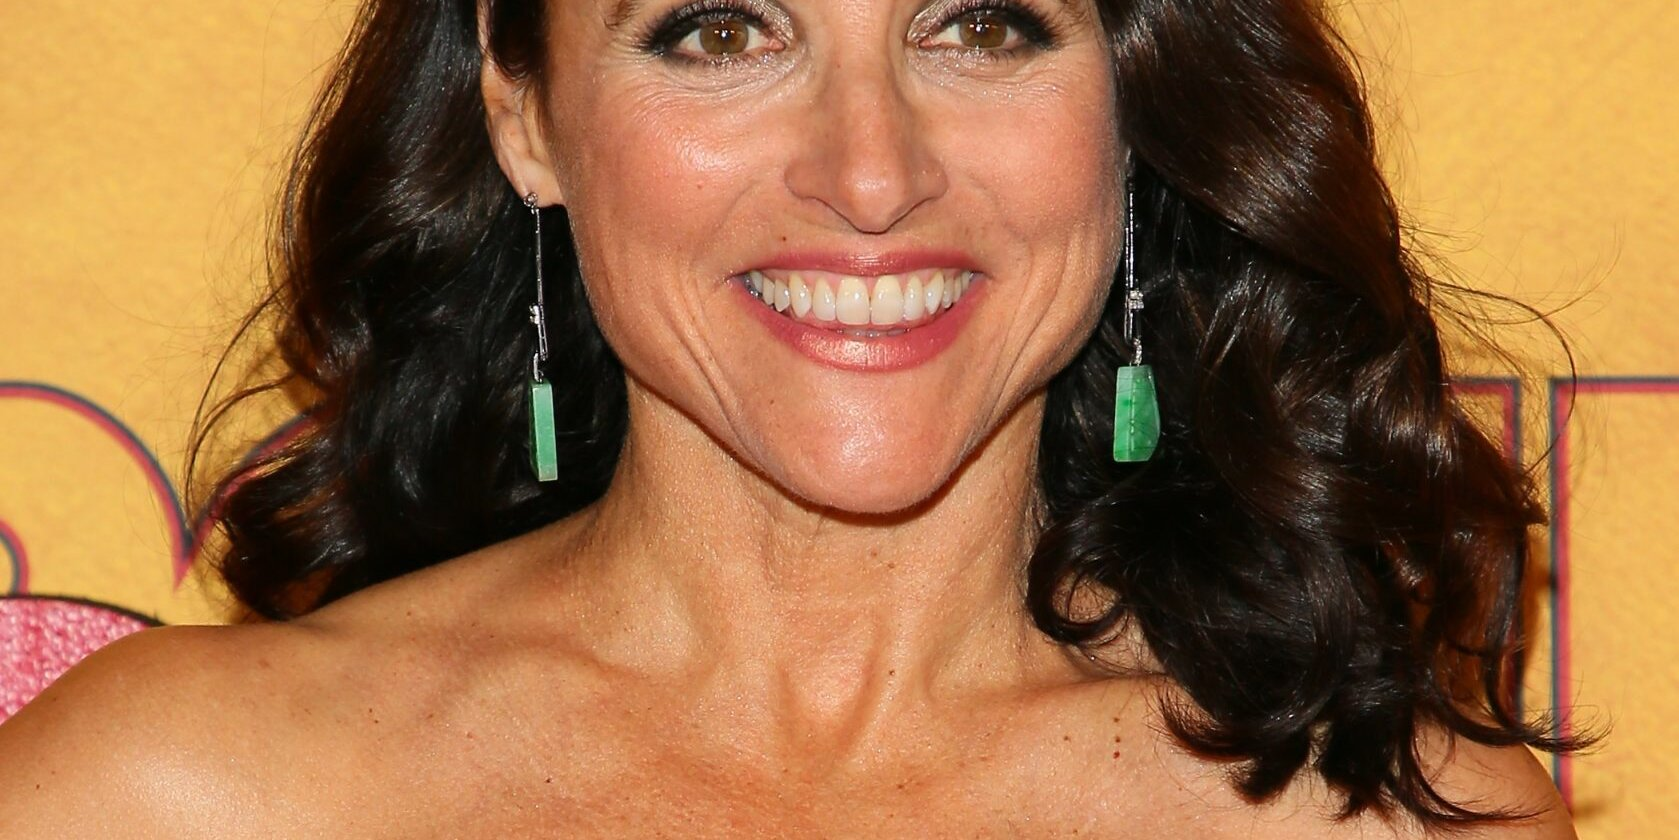 Julia Louis-Dreyfus 'Feeling Happy and Ready to Rock' After Breast Cancer Surgery